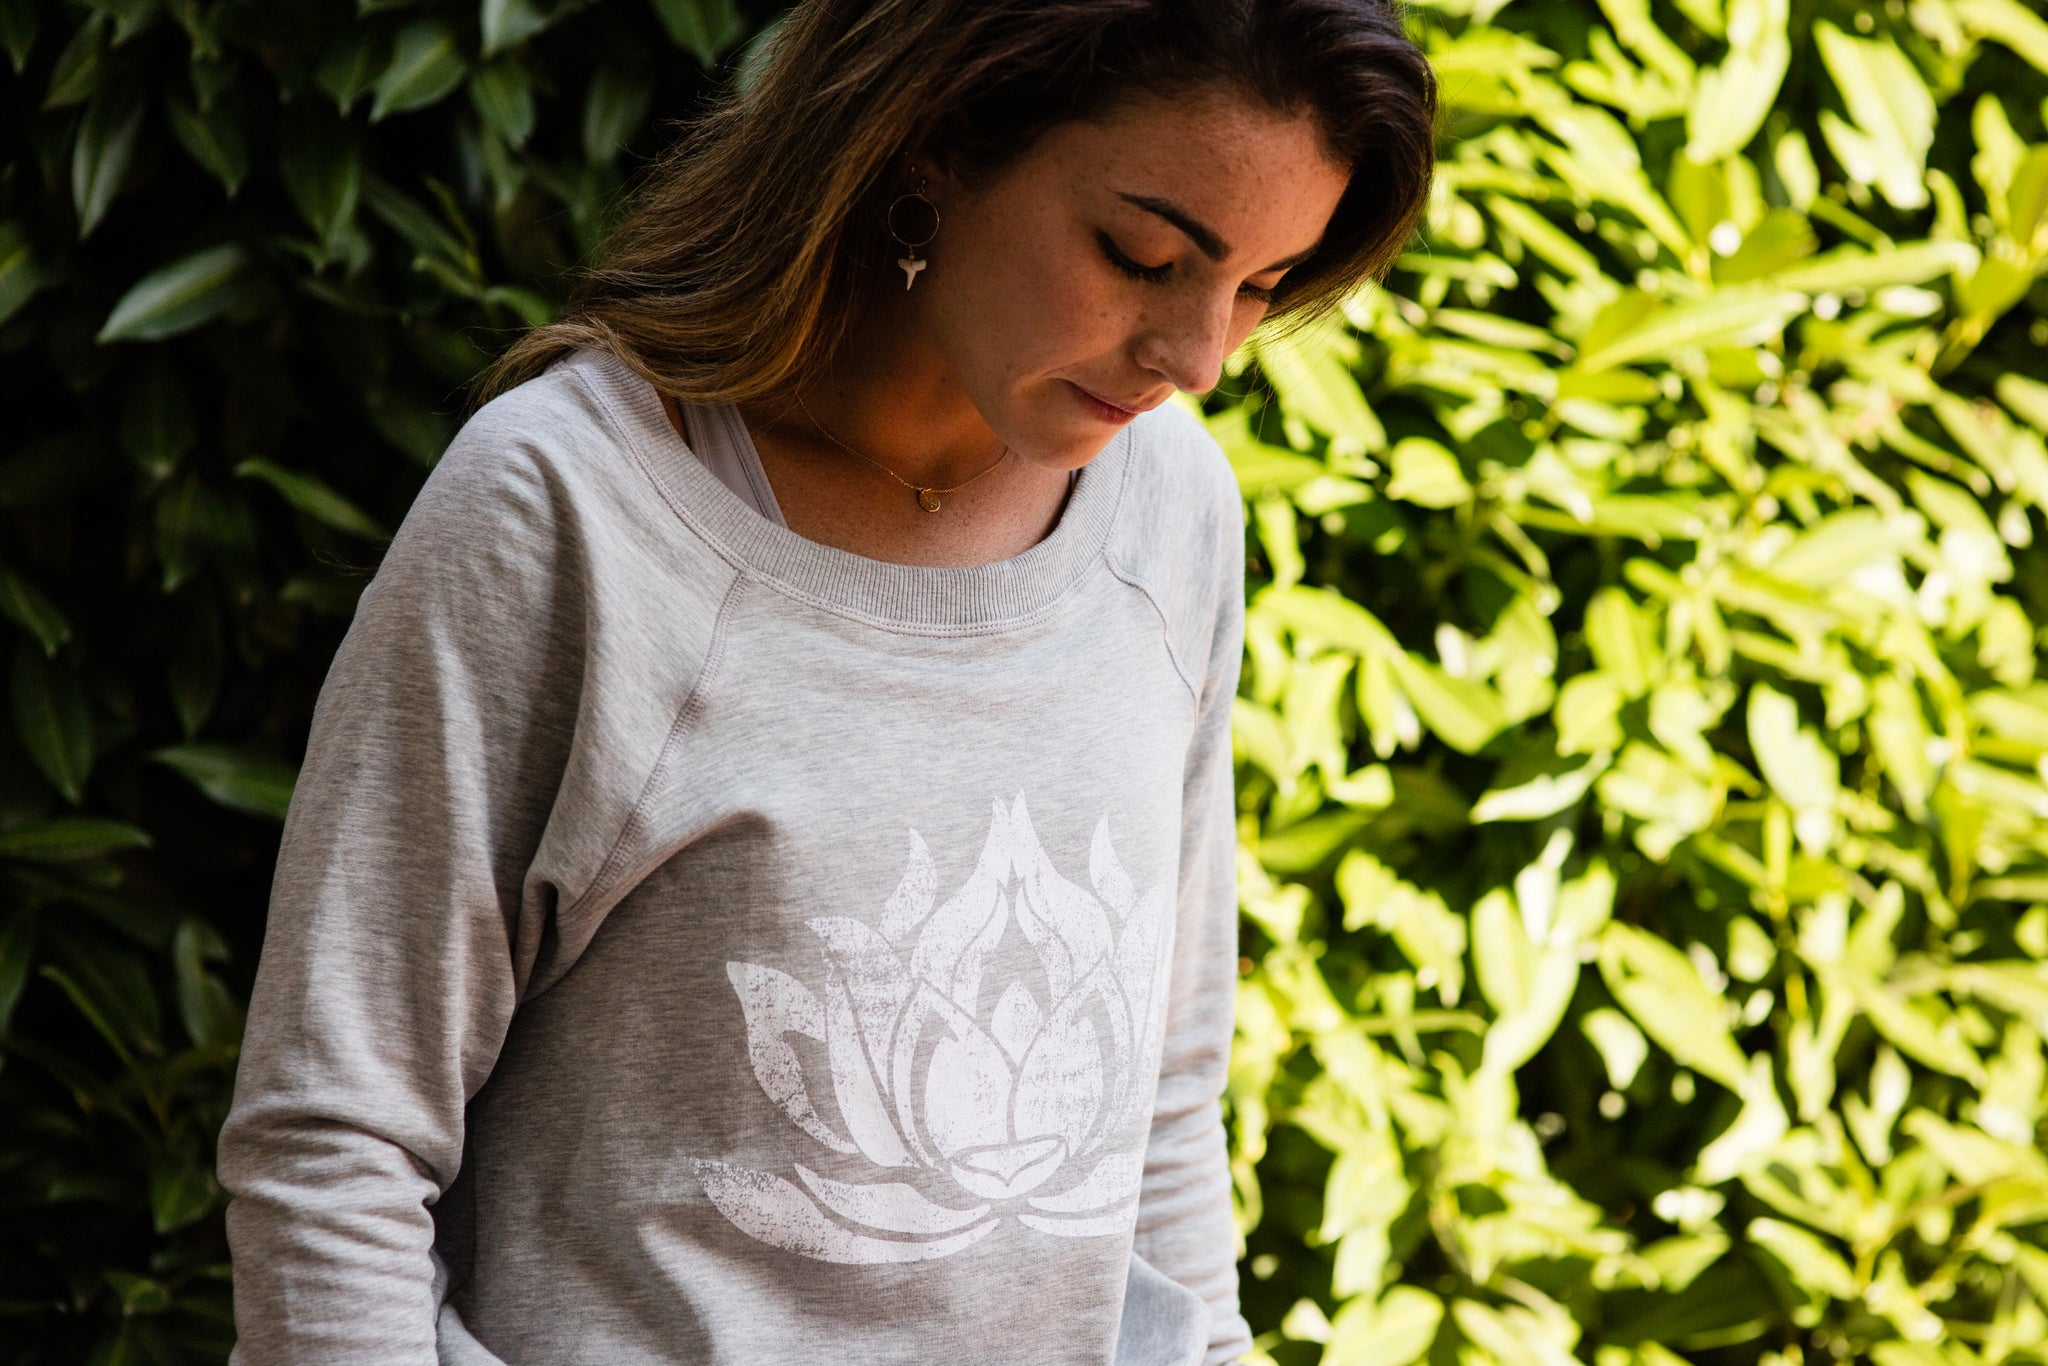 WHITE LOTUS Heather Grey Boyfriend Sweatshirt - Haven Collective